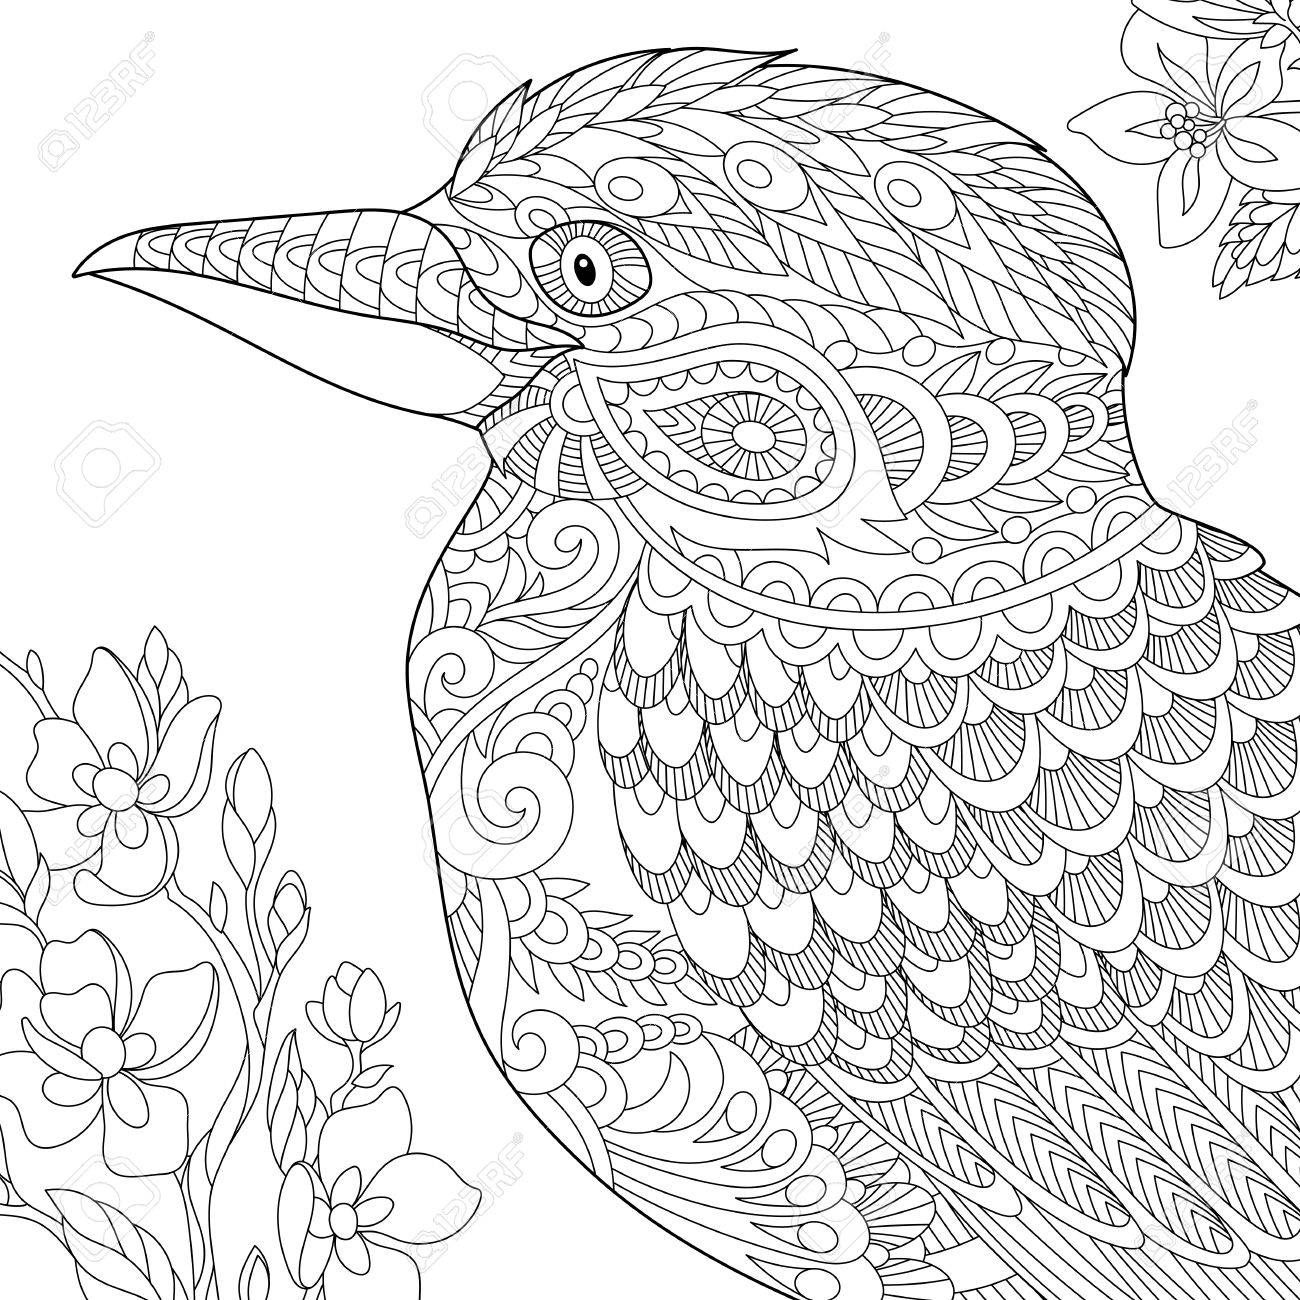 Coloring Page Of Australian Kookaburra Bird Freehand Sketch Drawing For Adult Antistress Book